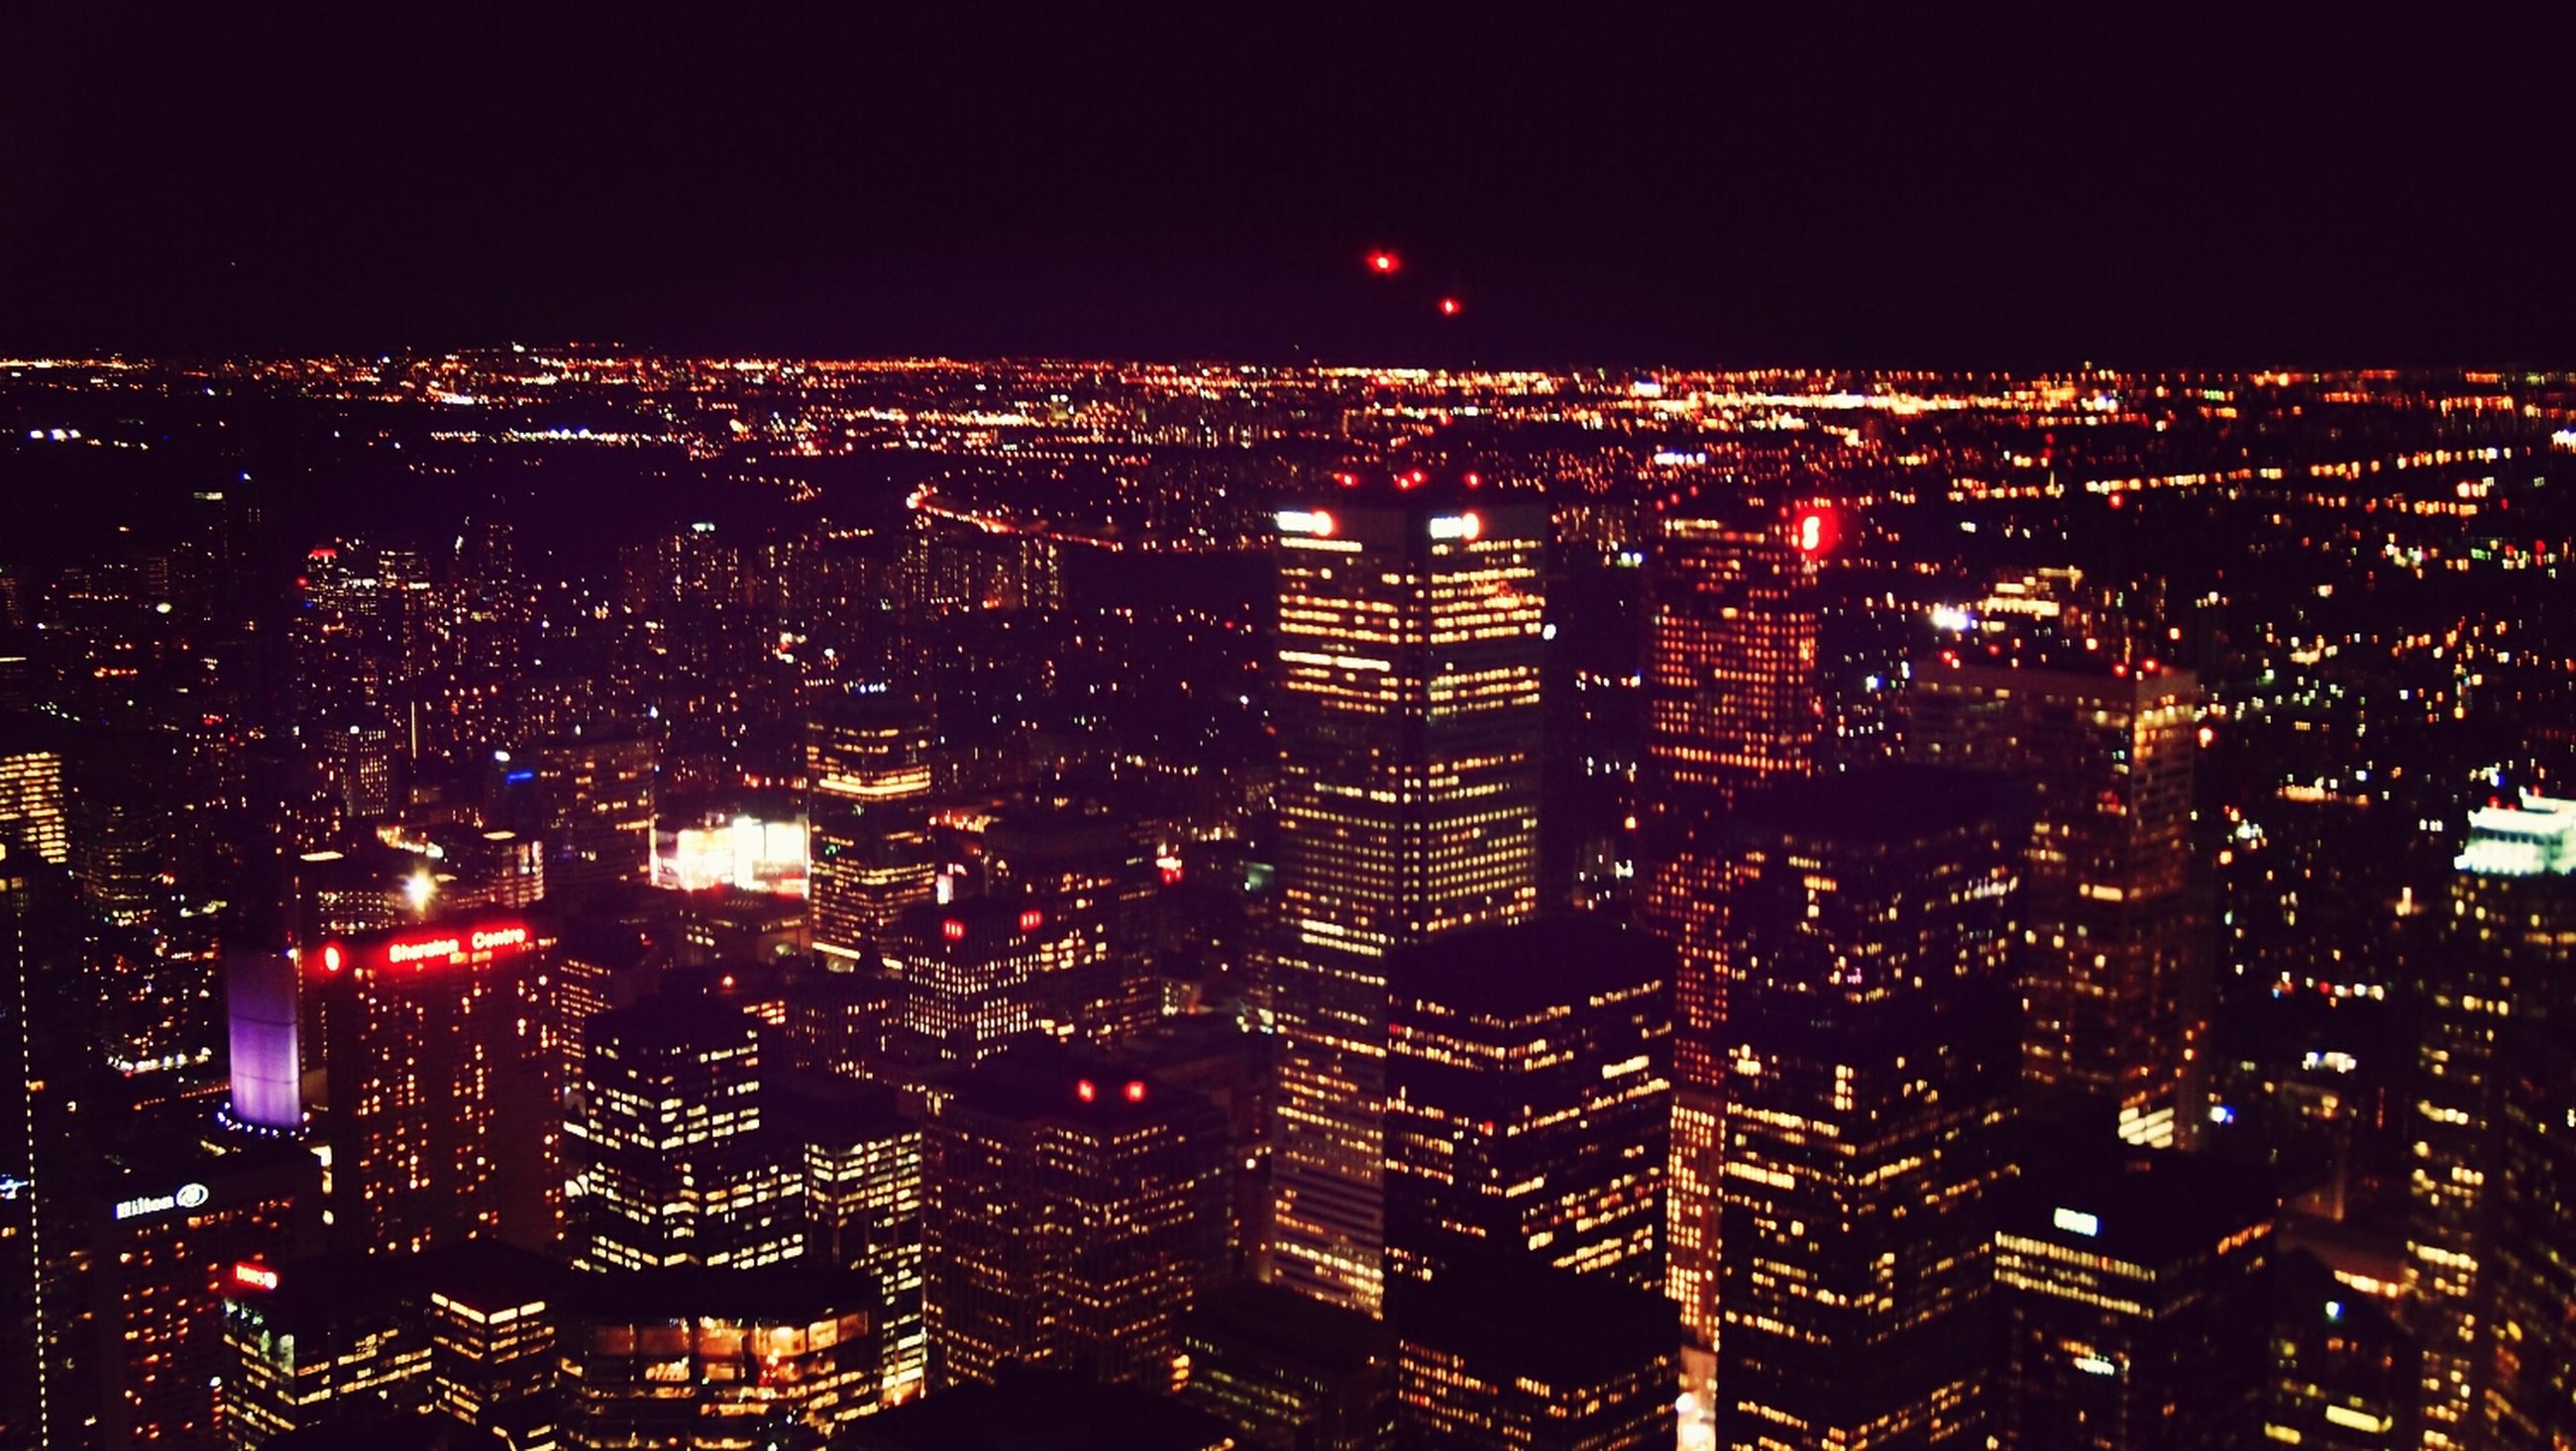 illuminated, night, cityscape, city, building exterior, architecture, crowded, built structure, high angle view, skyscraper, residential district, dark, sky, modern, aerial view, city life, light, residential building, no people, tower